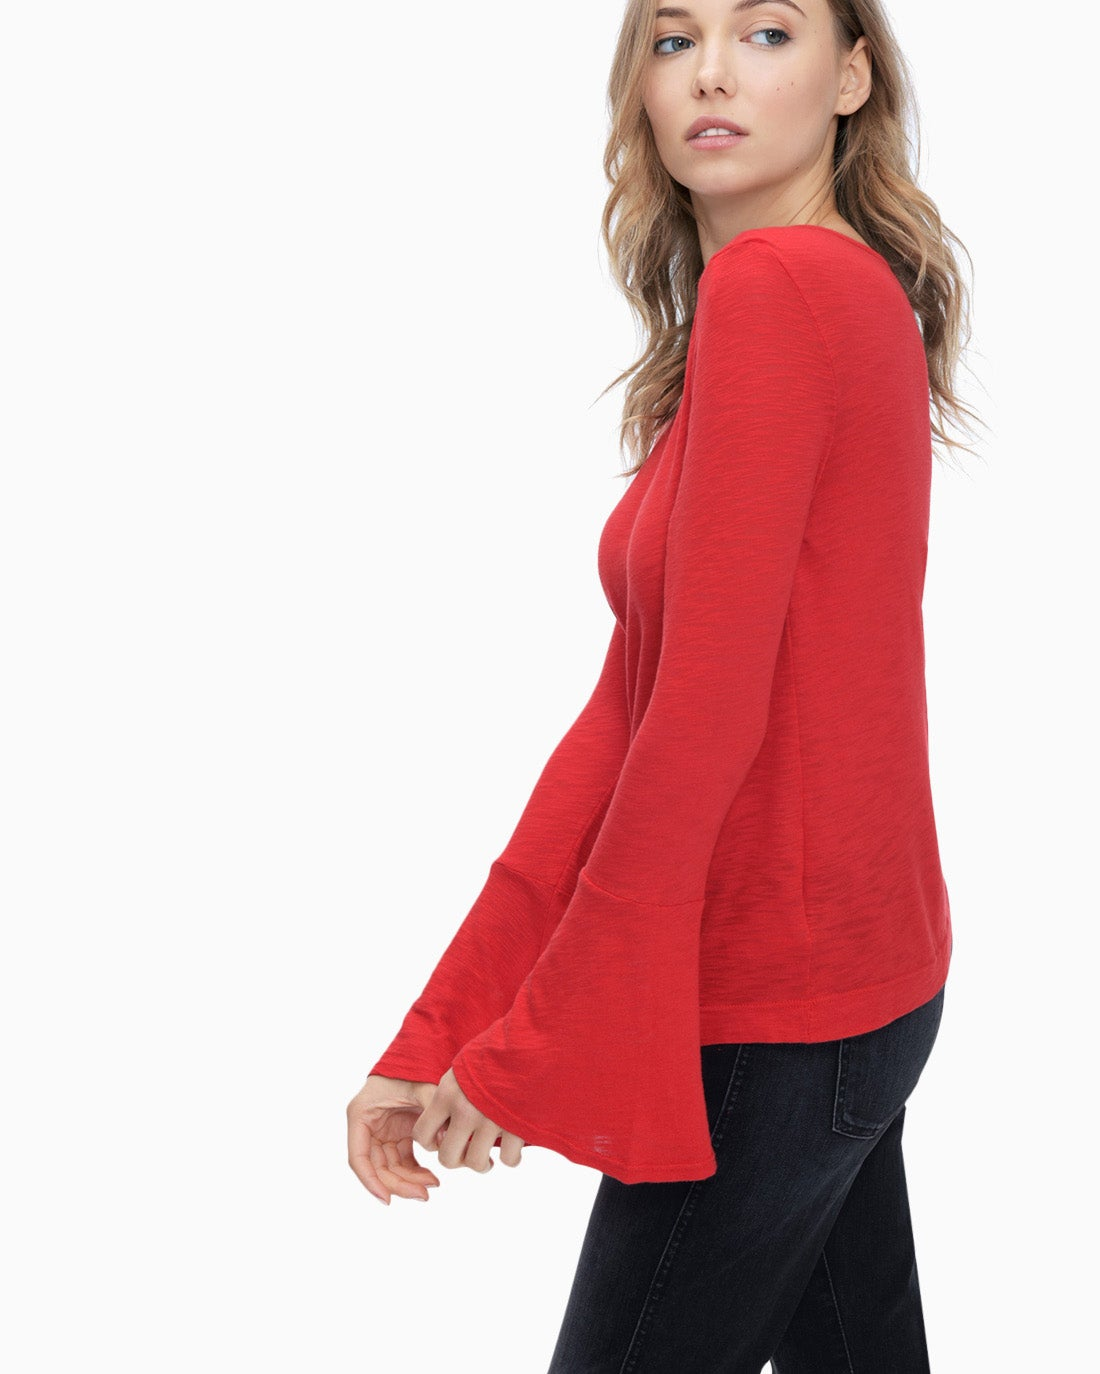 Splendid Women's Heavy Slub Jersey Bell Sleeve Top